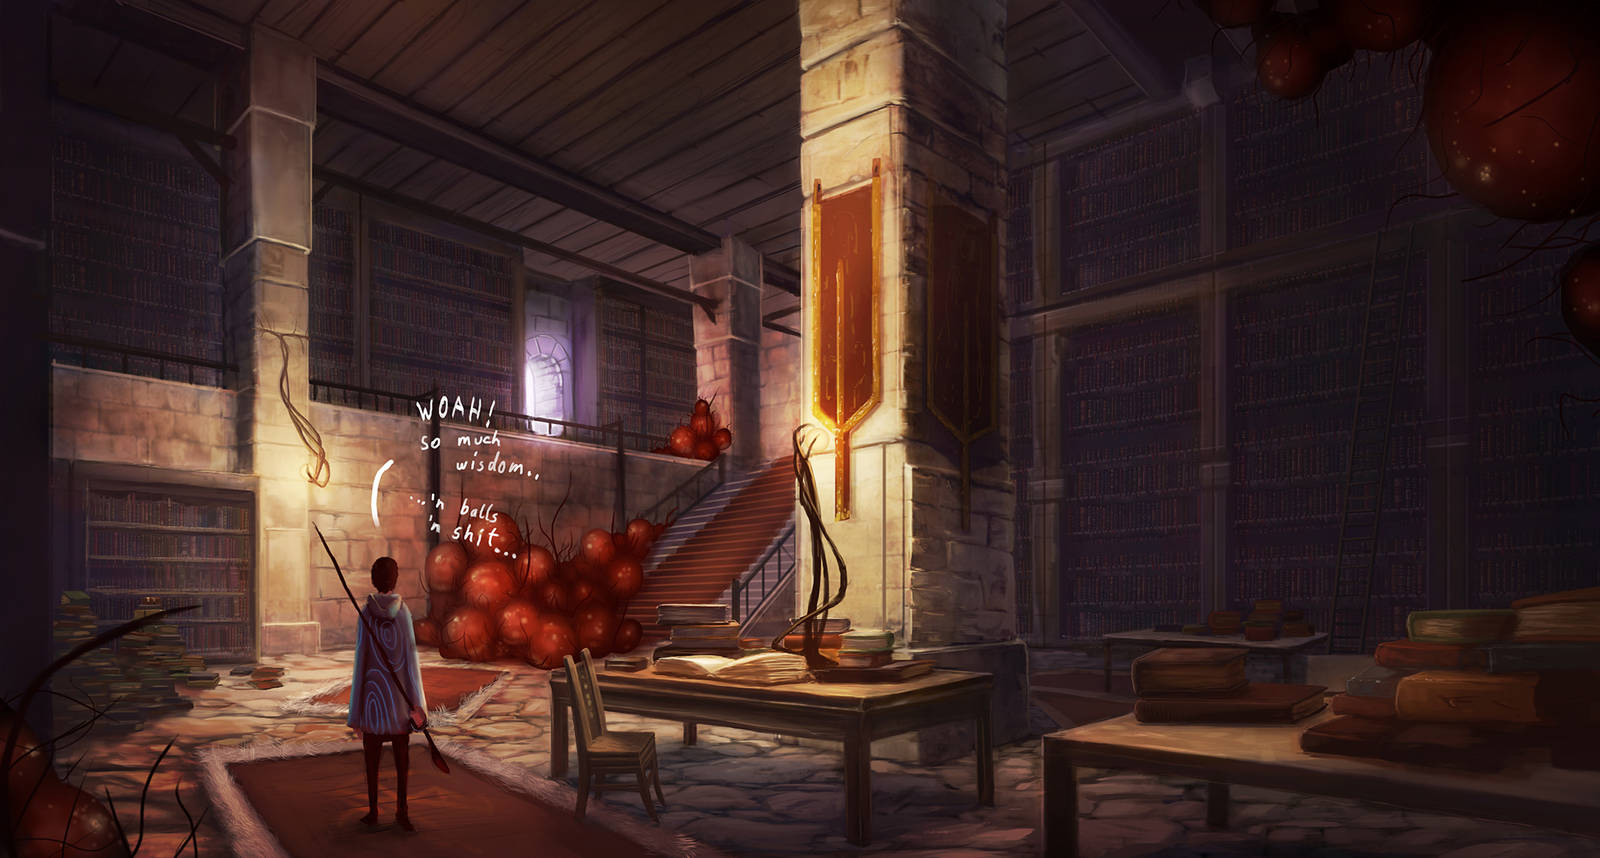 Library by LukasBanas